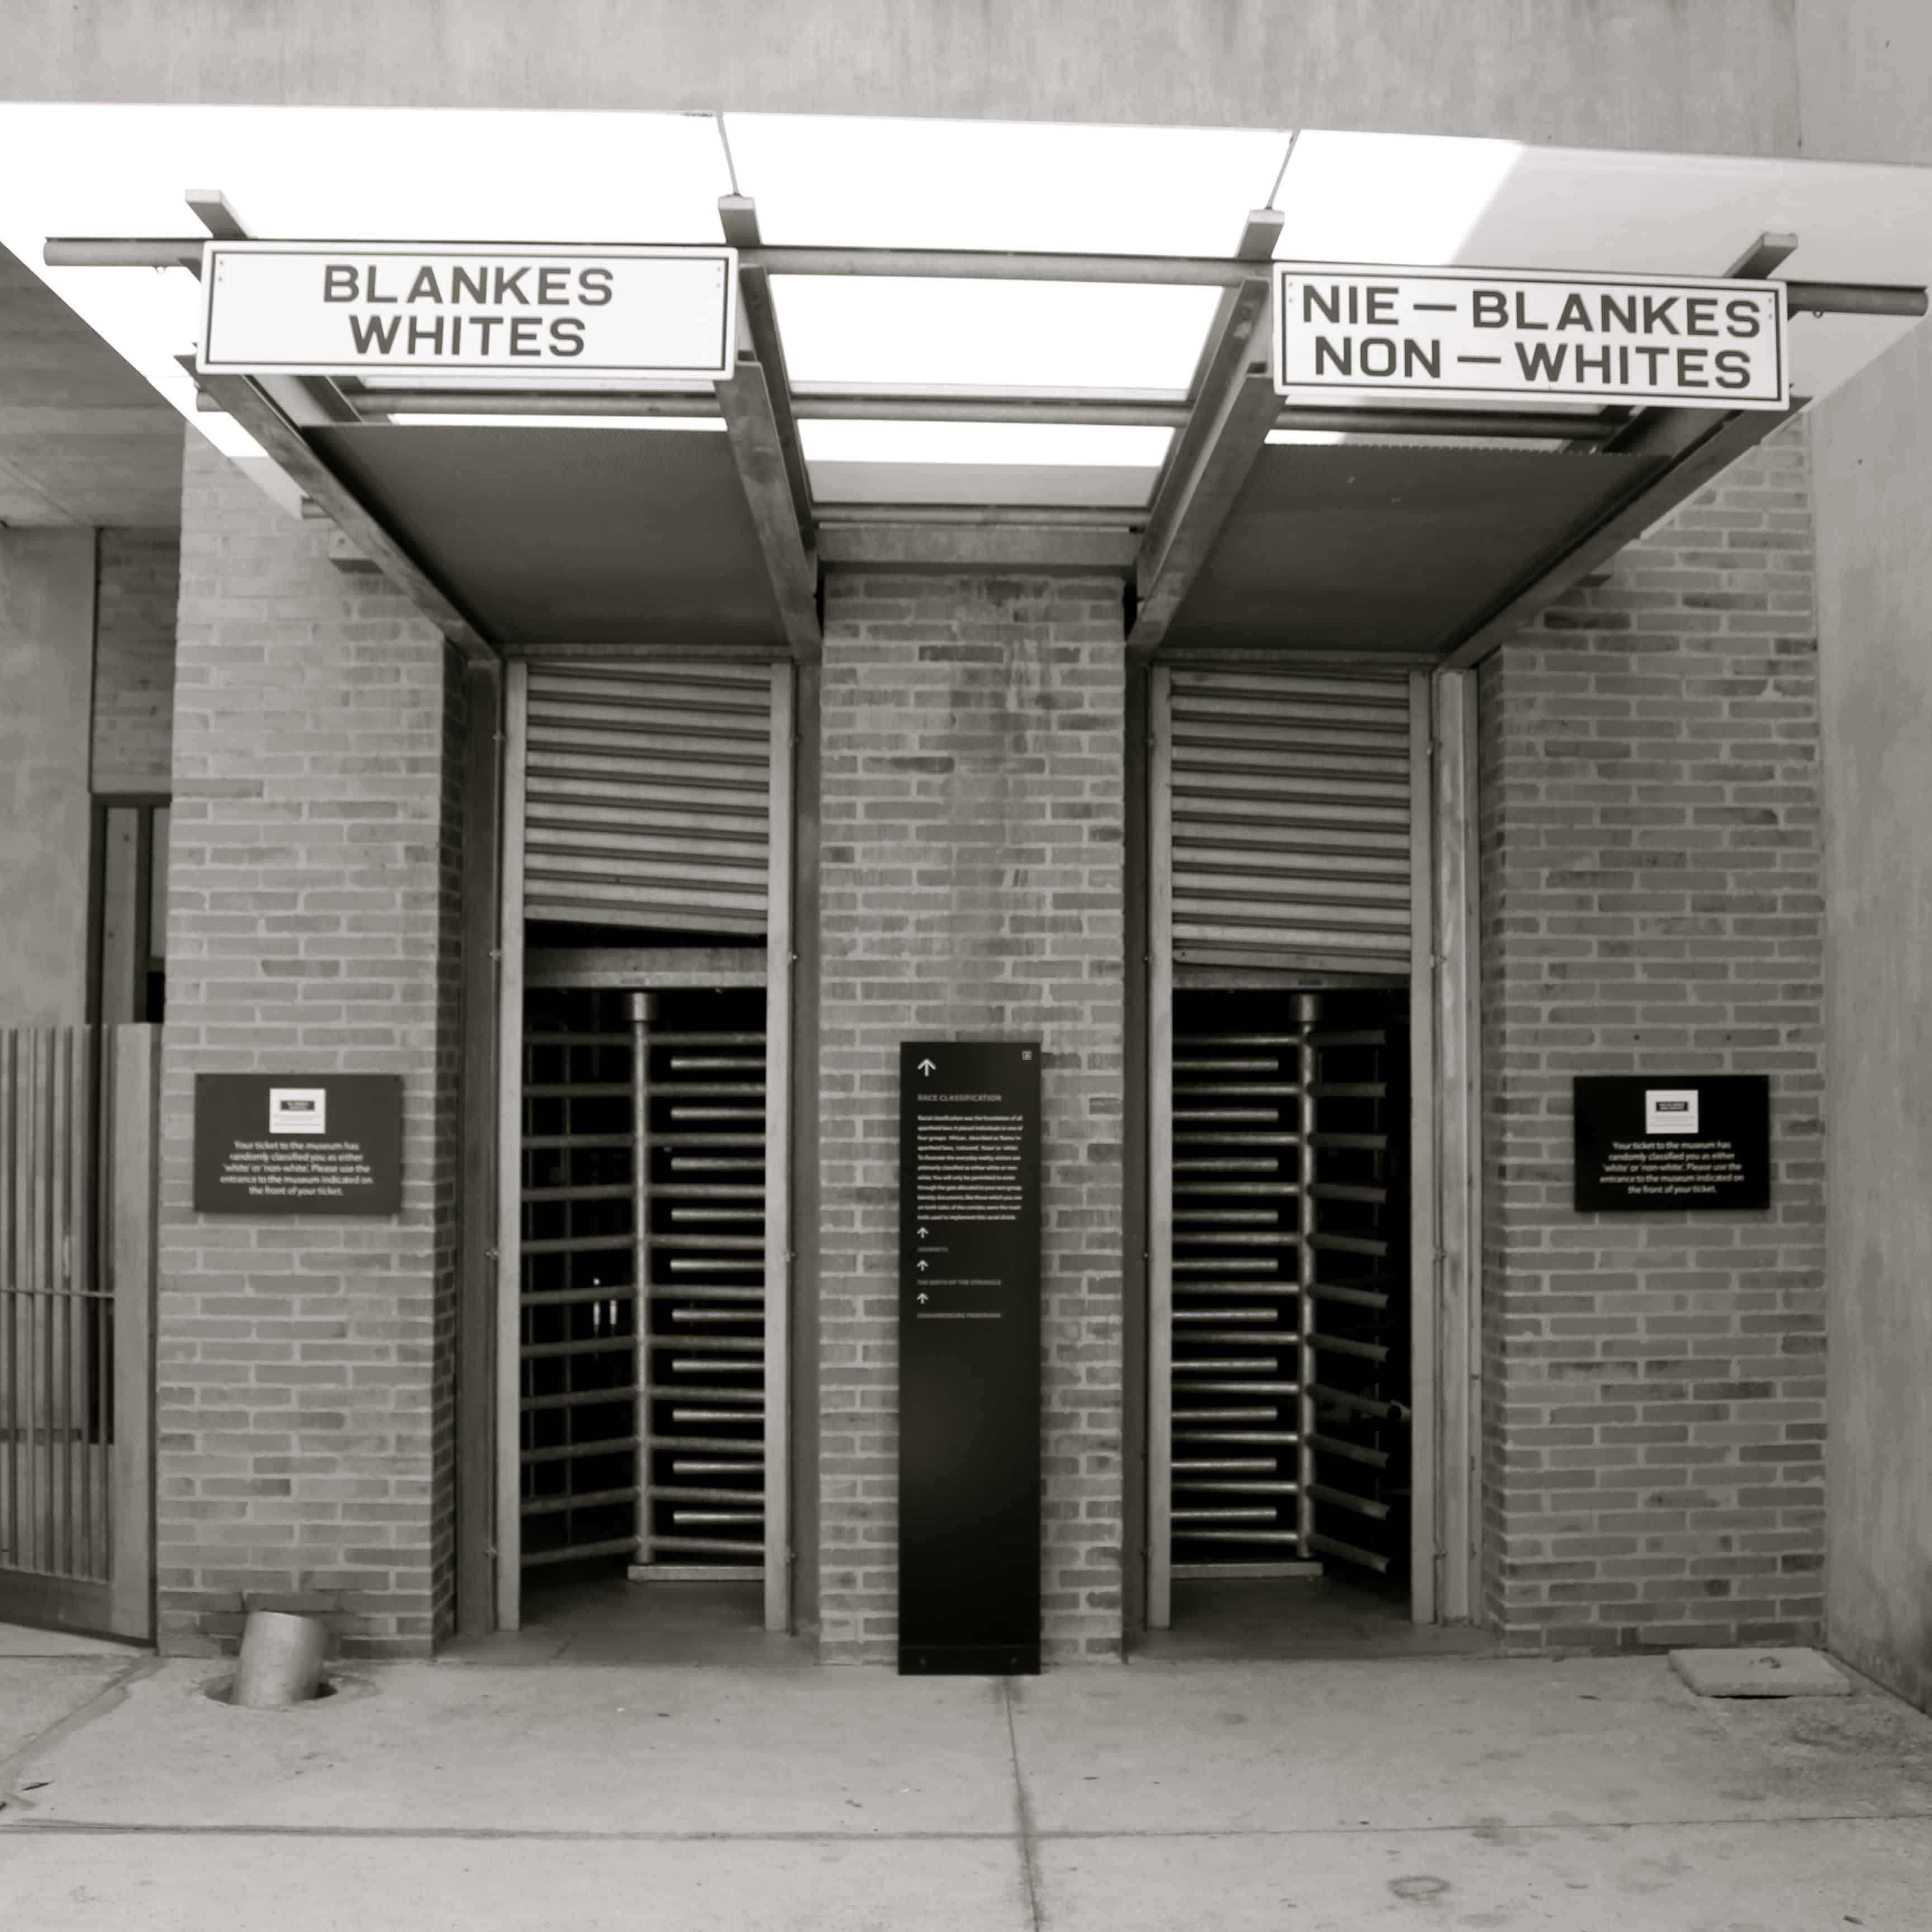 Apartheid Museum - Top South African Destinations